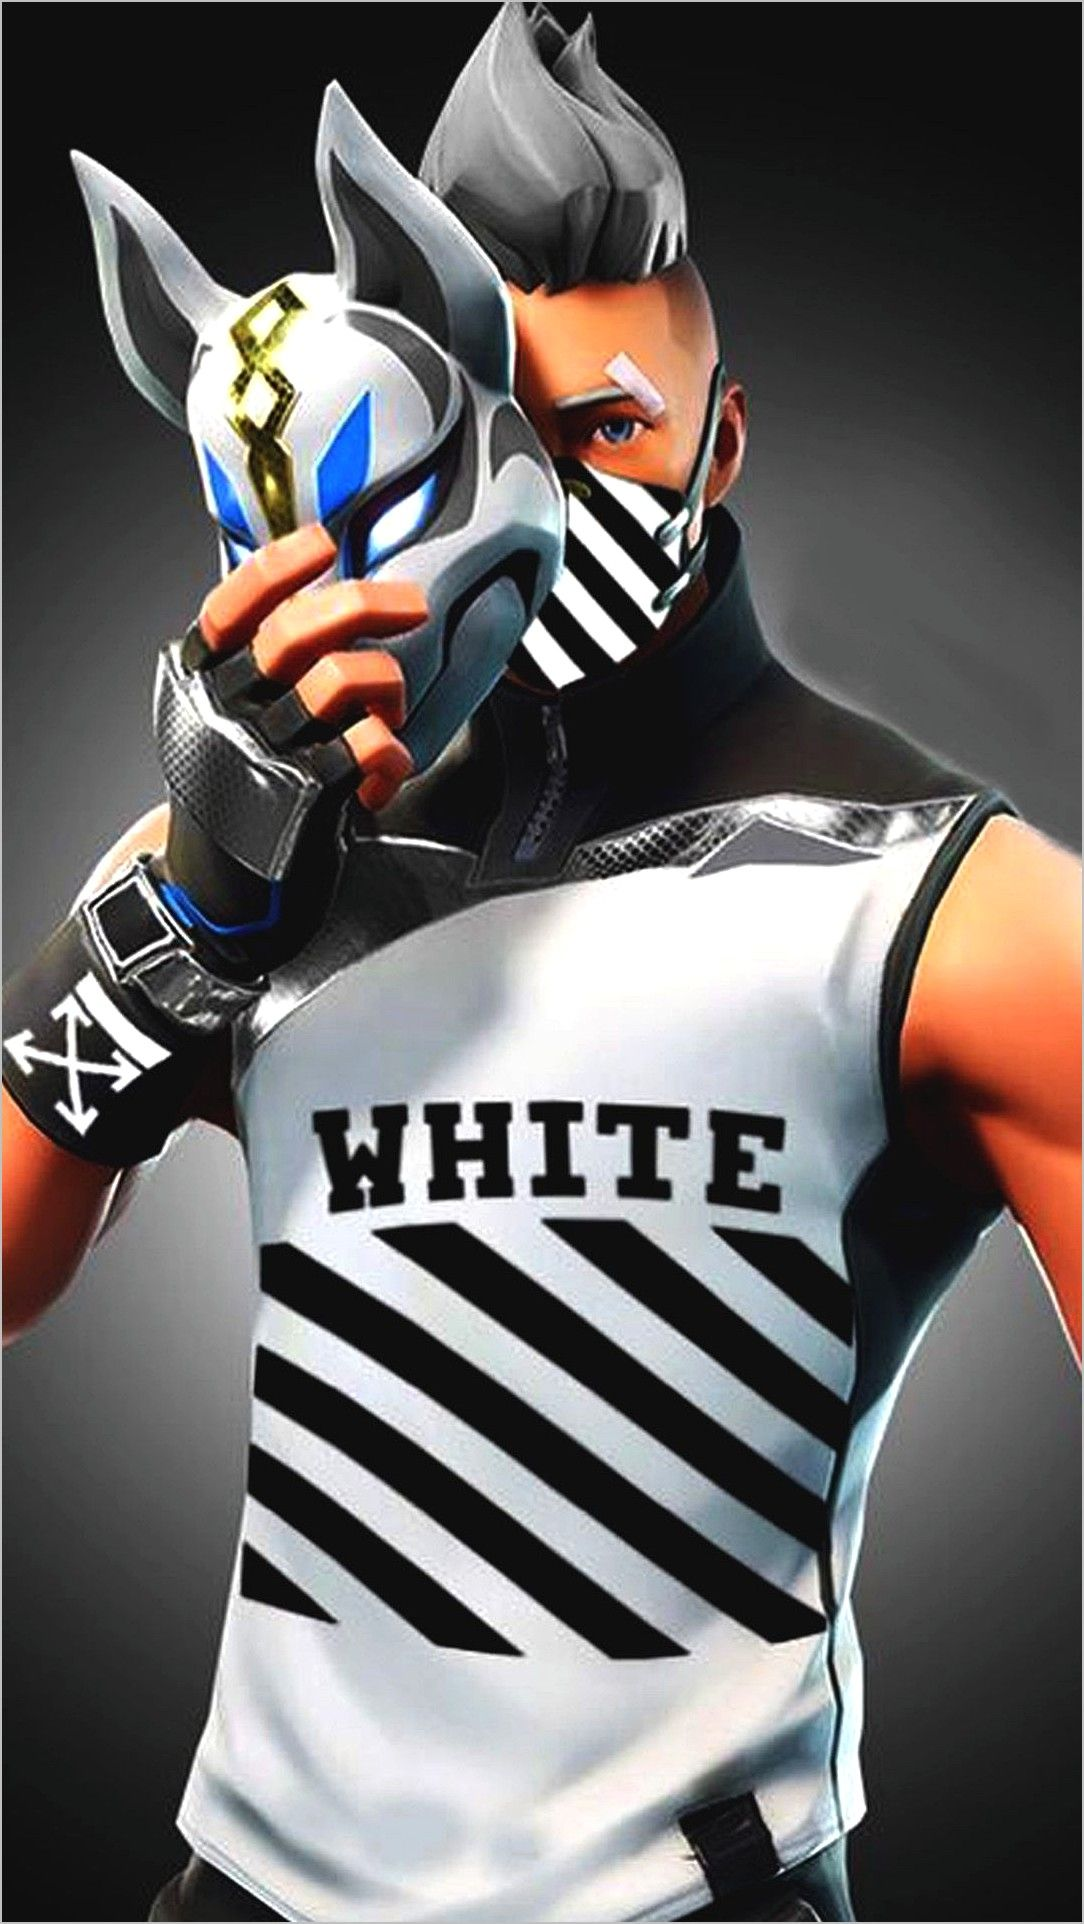 Fortnite Skin Wallpaper 4k In 2020 Game Wallpaper Iphone Best Gaming Wallpapers Gaming Wallpapers